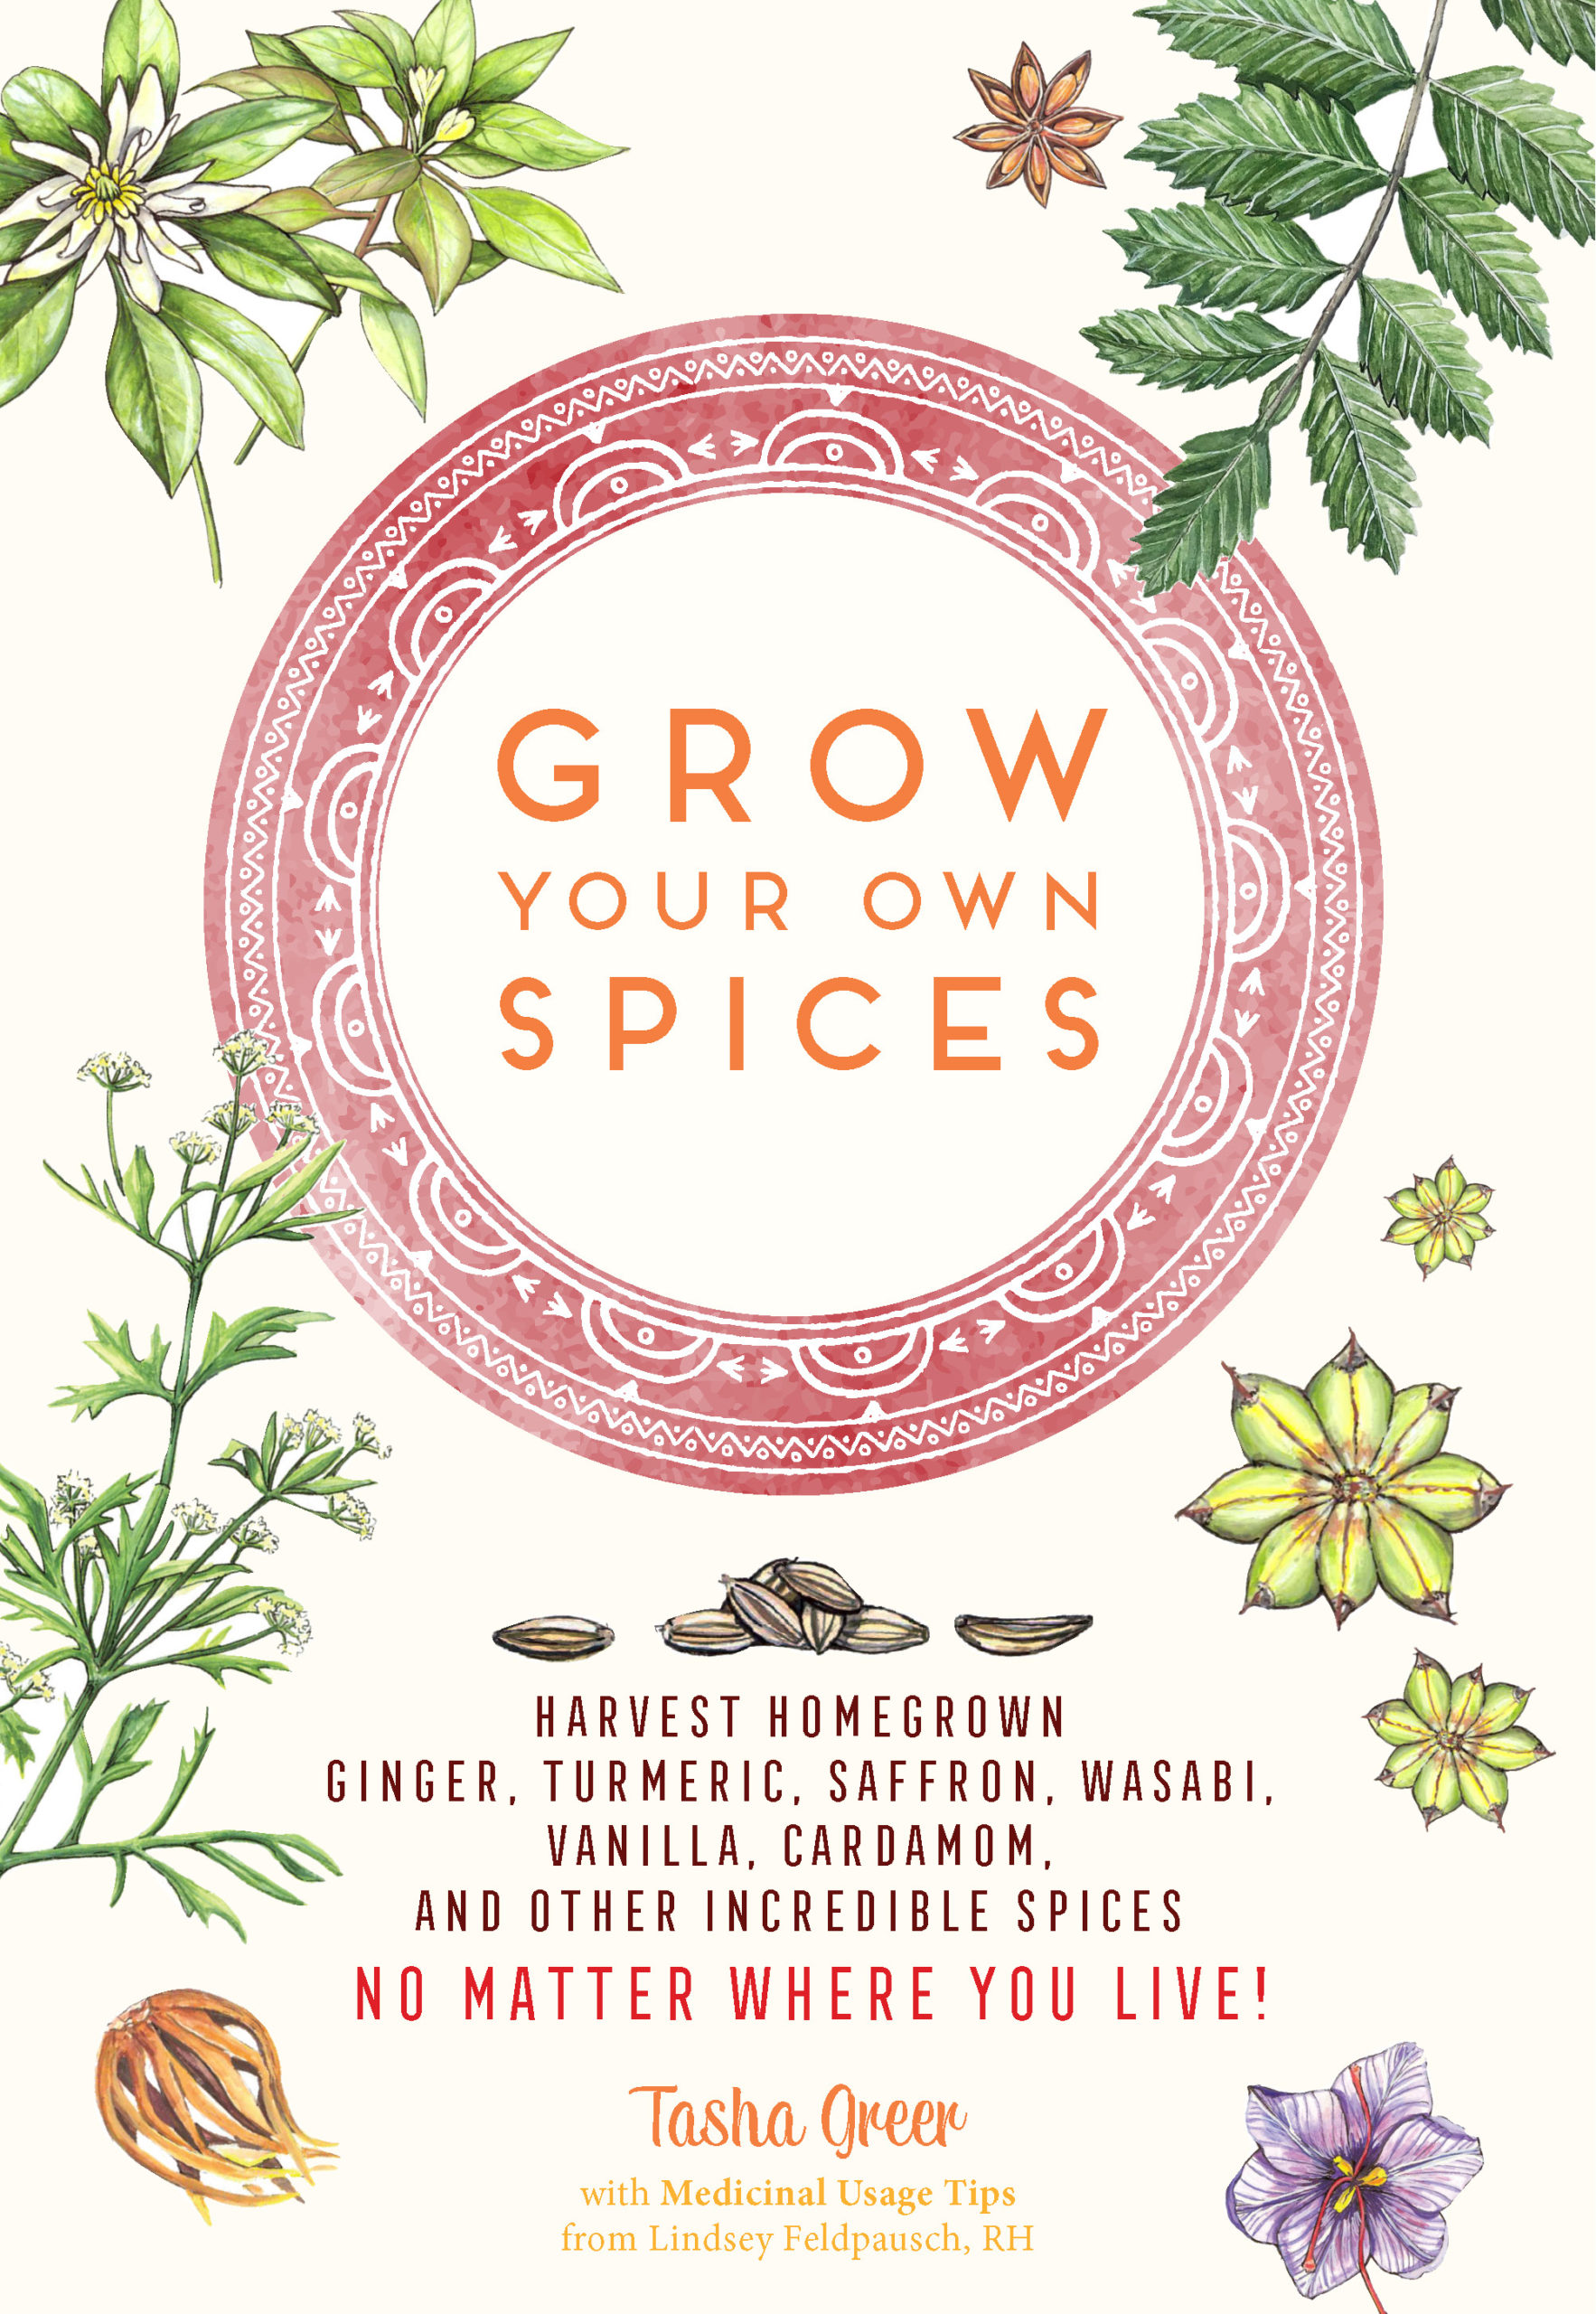 How to Grow Your Own Spices